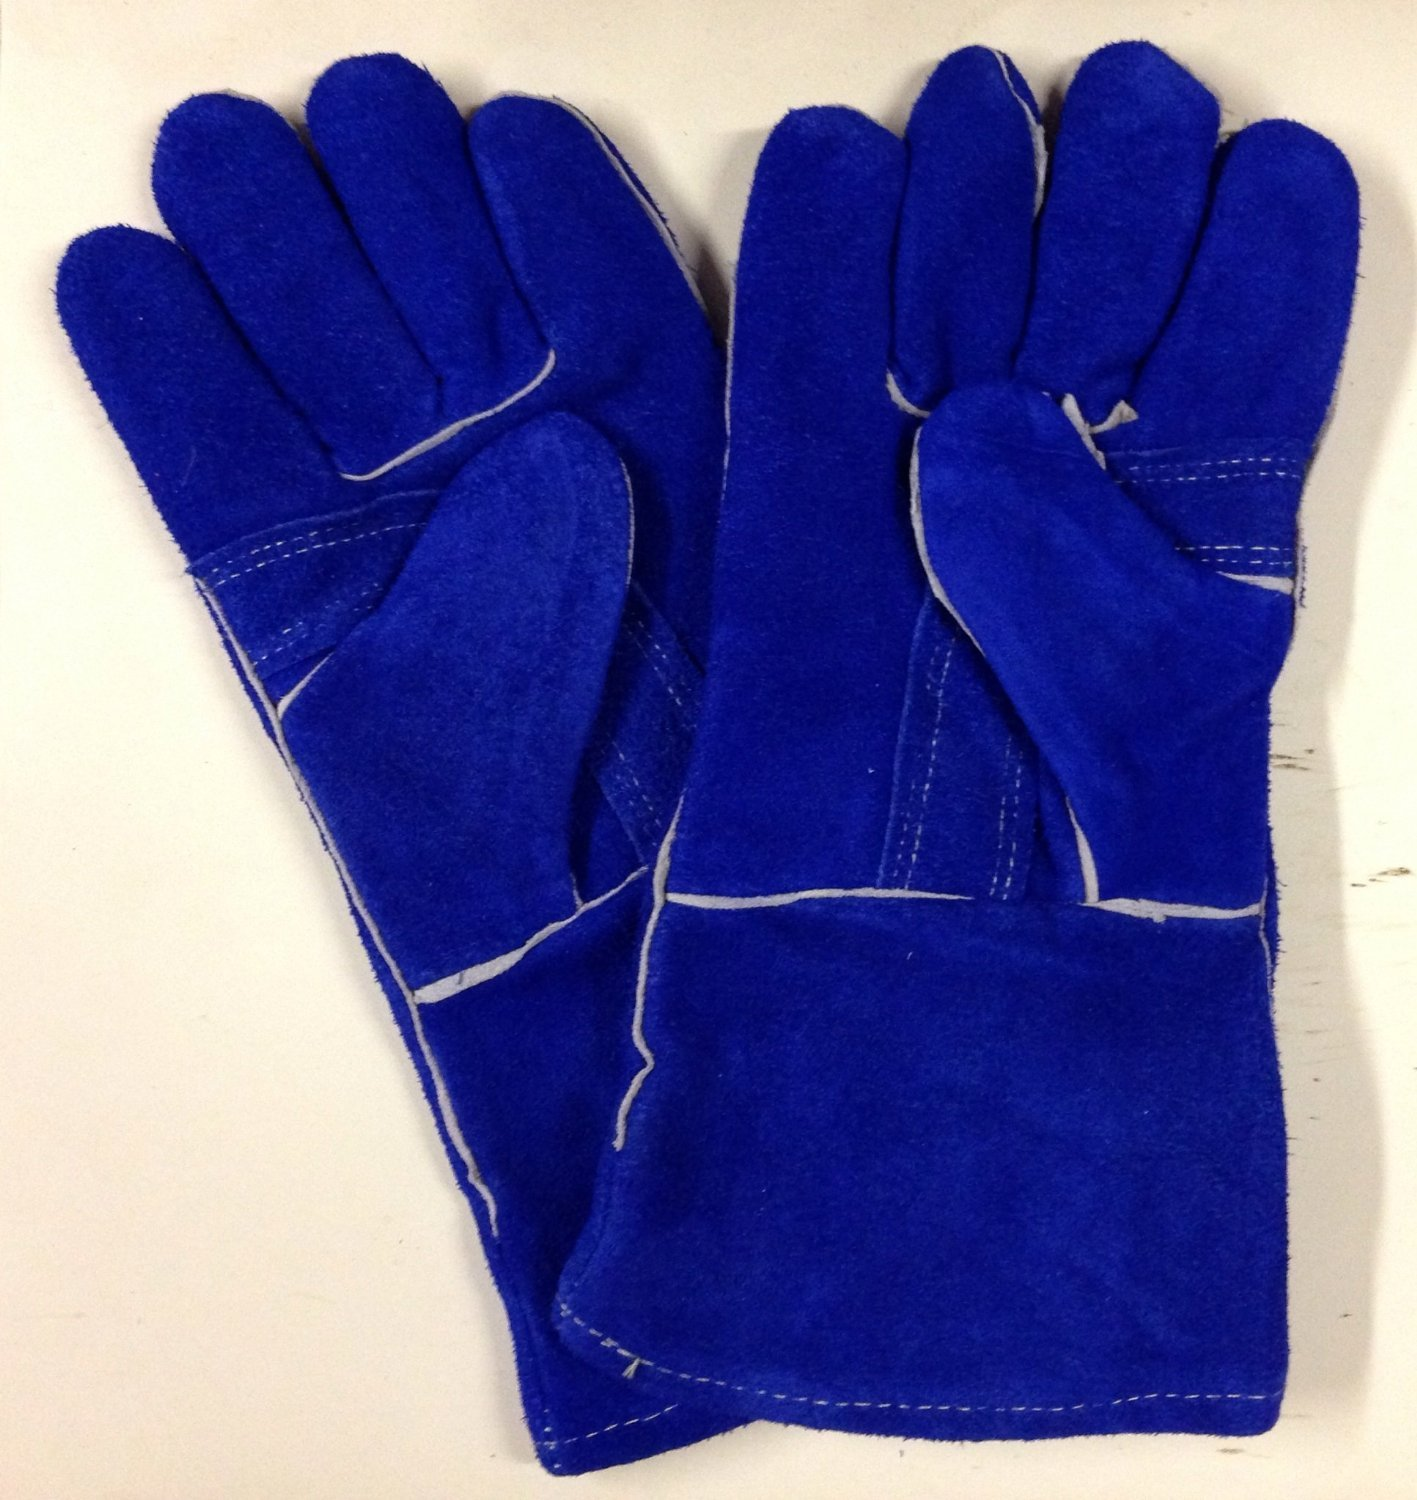 SomerFire Extra Thick Blue Heat Resistant Fireplace Stove Woodburner Gauntlet Fireside Gloves XL